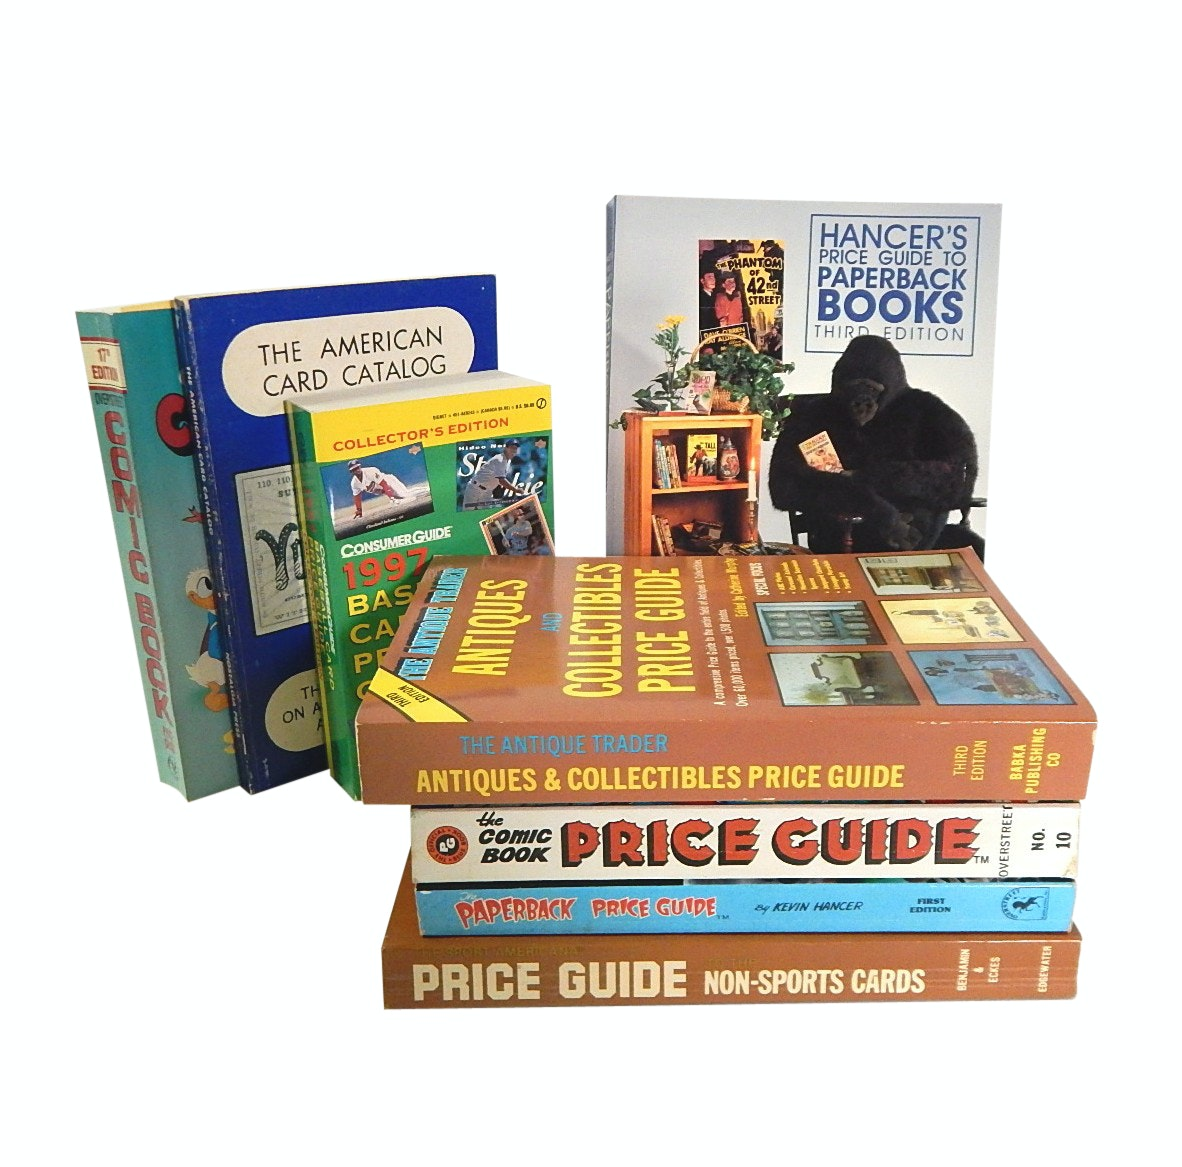 Price Guides to Trading Cards, Comic Books, Antiques, Paper Back Books